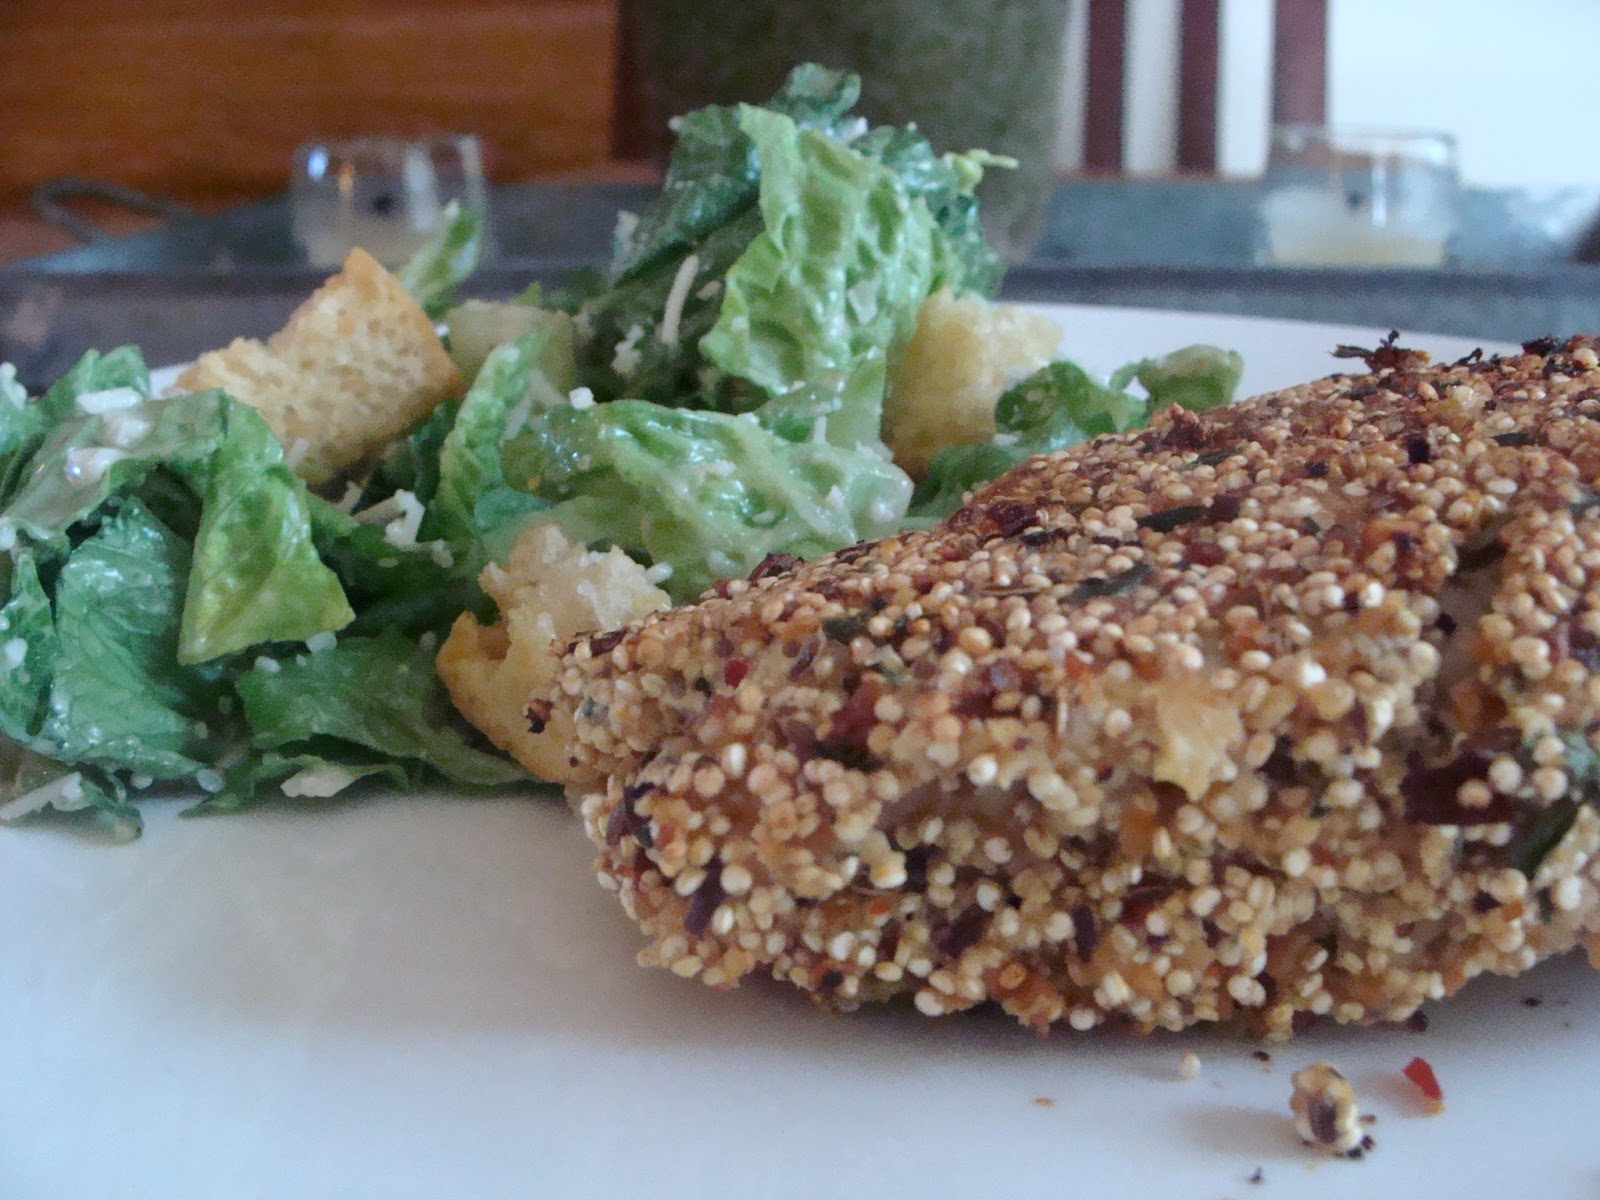 Inside Heather's Home: Quinoa Crusted Chicken